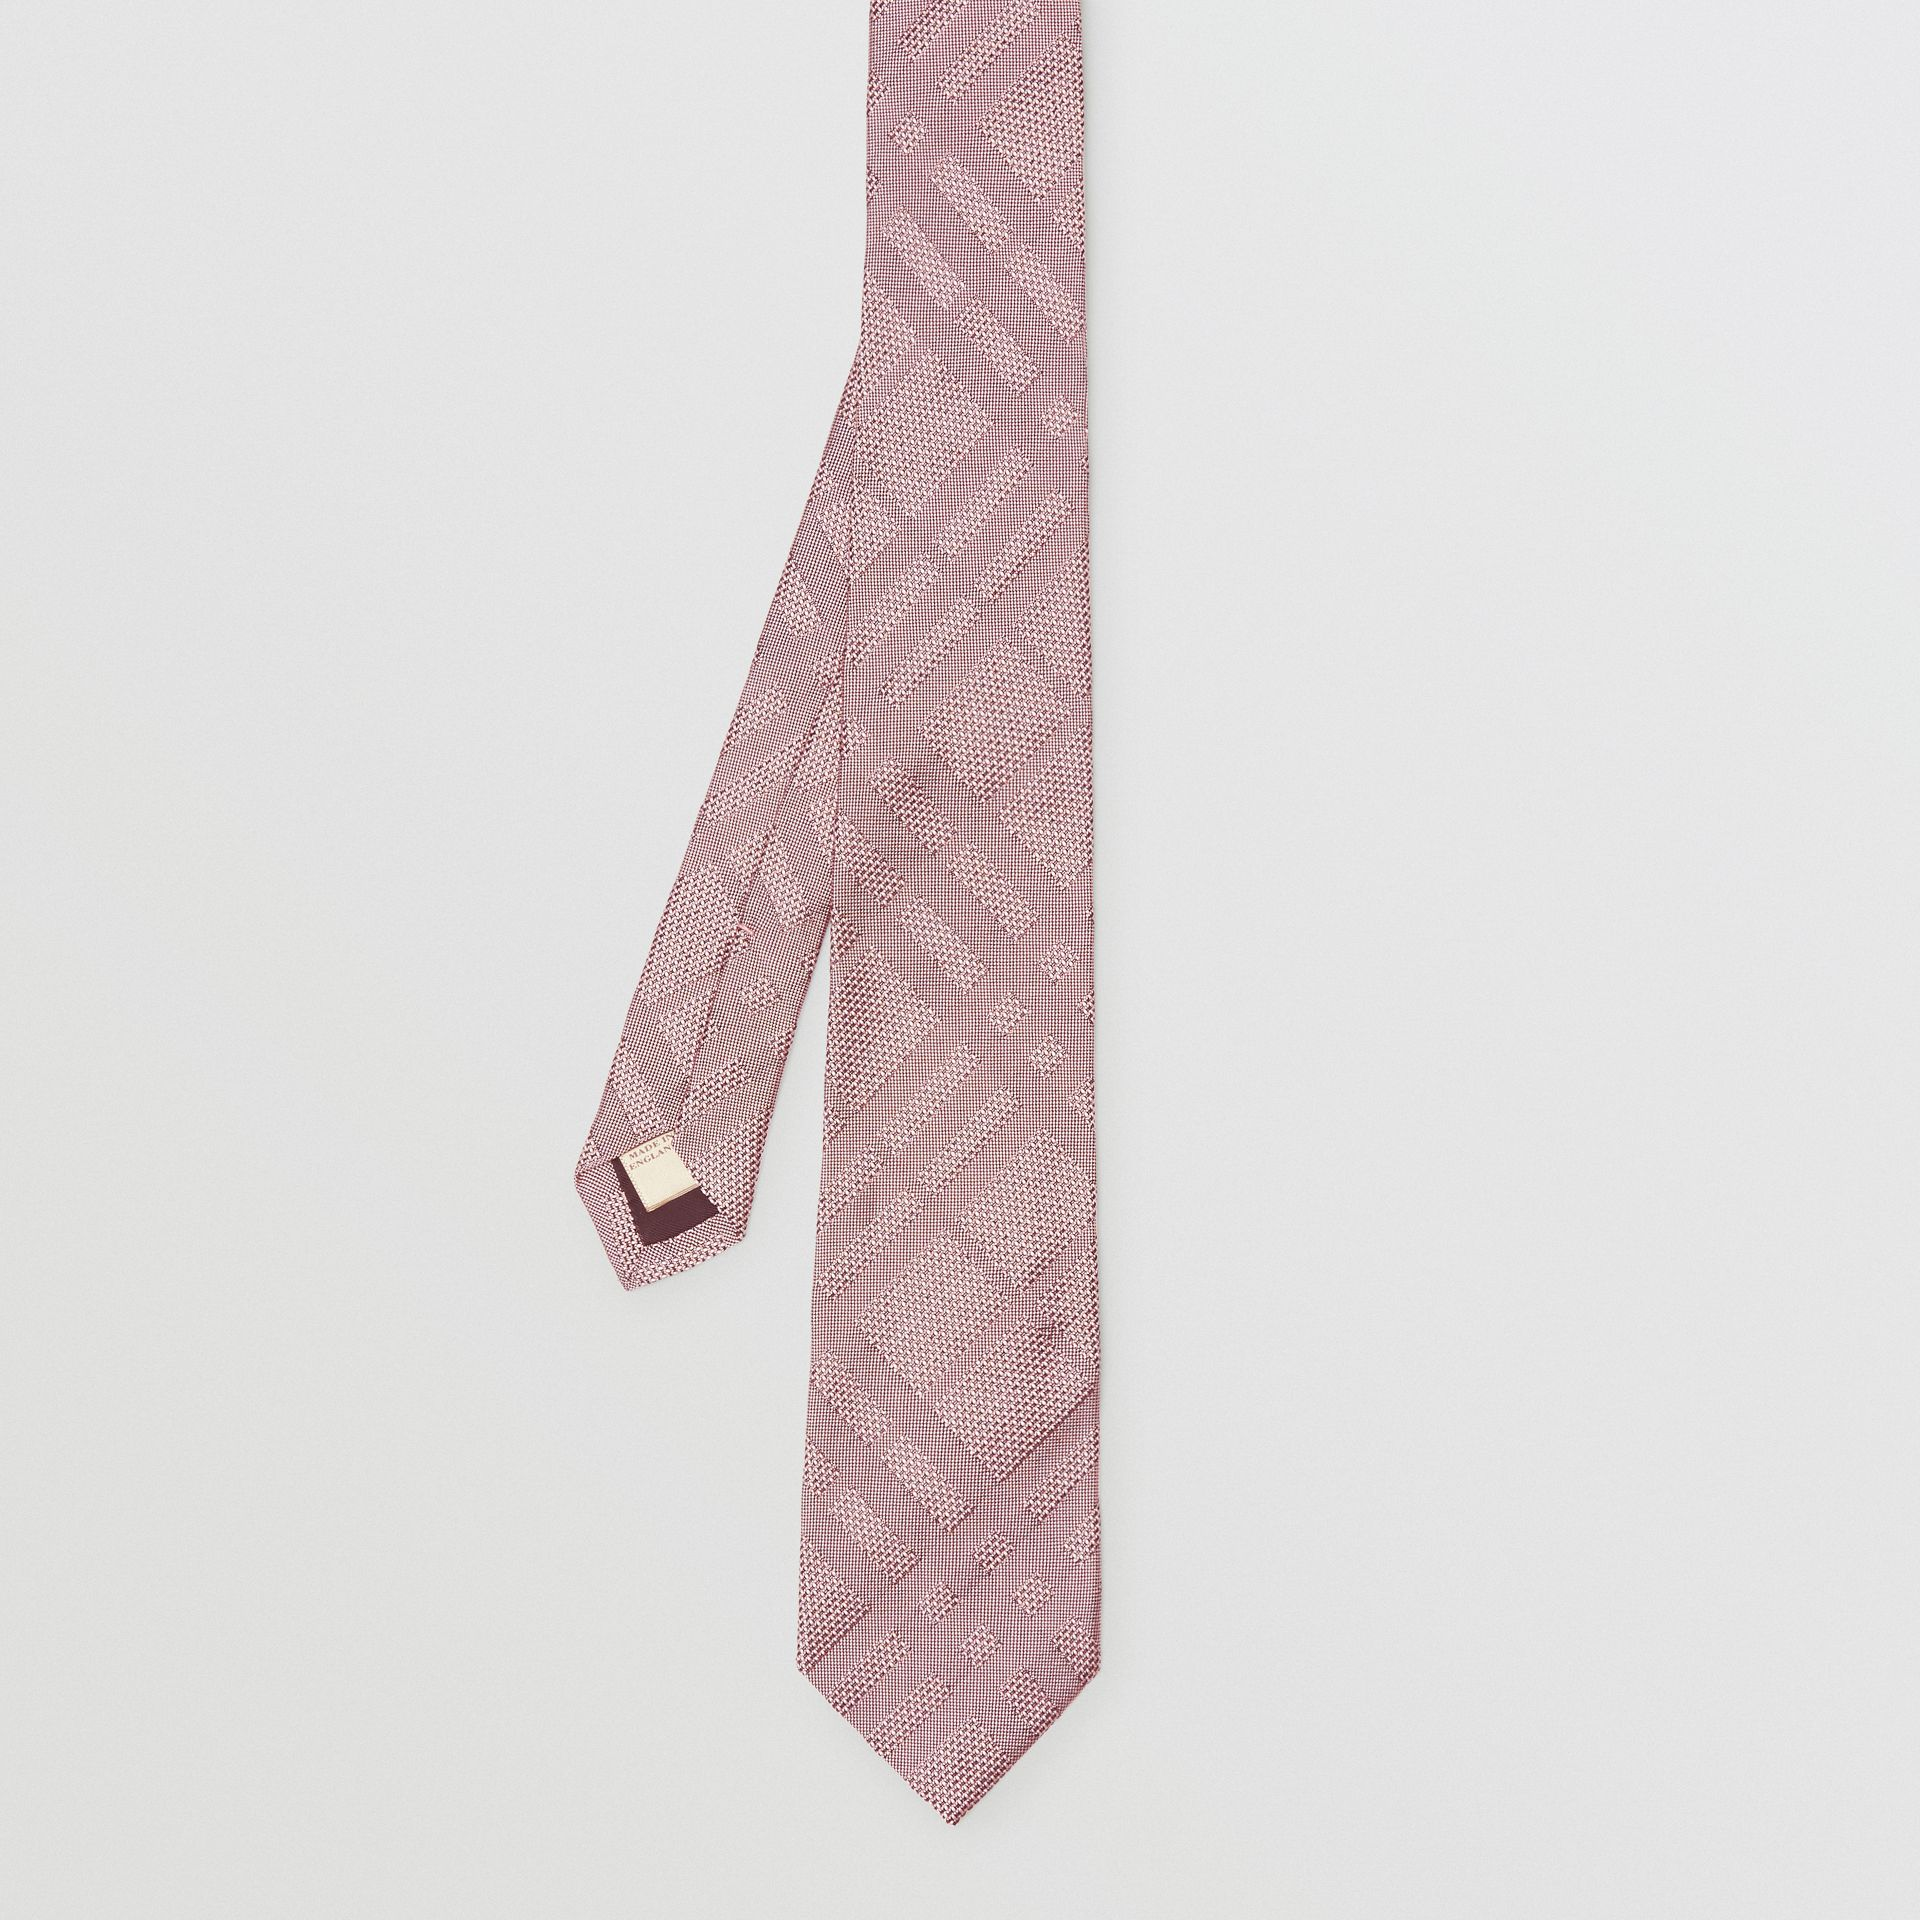 Modern Cut Check Silk Jacquard Tie in Alabaster Pink - Men | Burberry Australia - gallery image 4